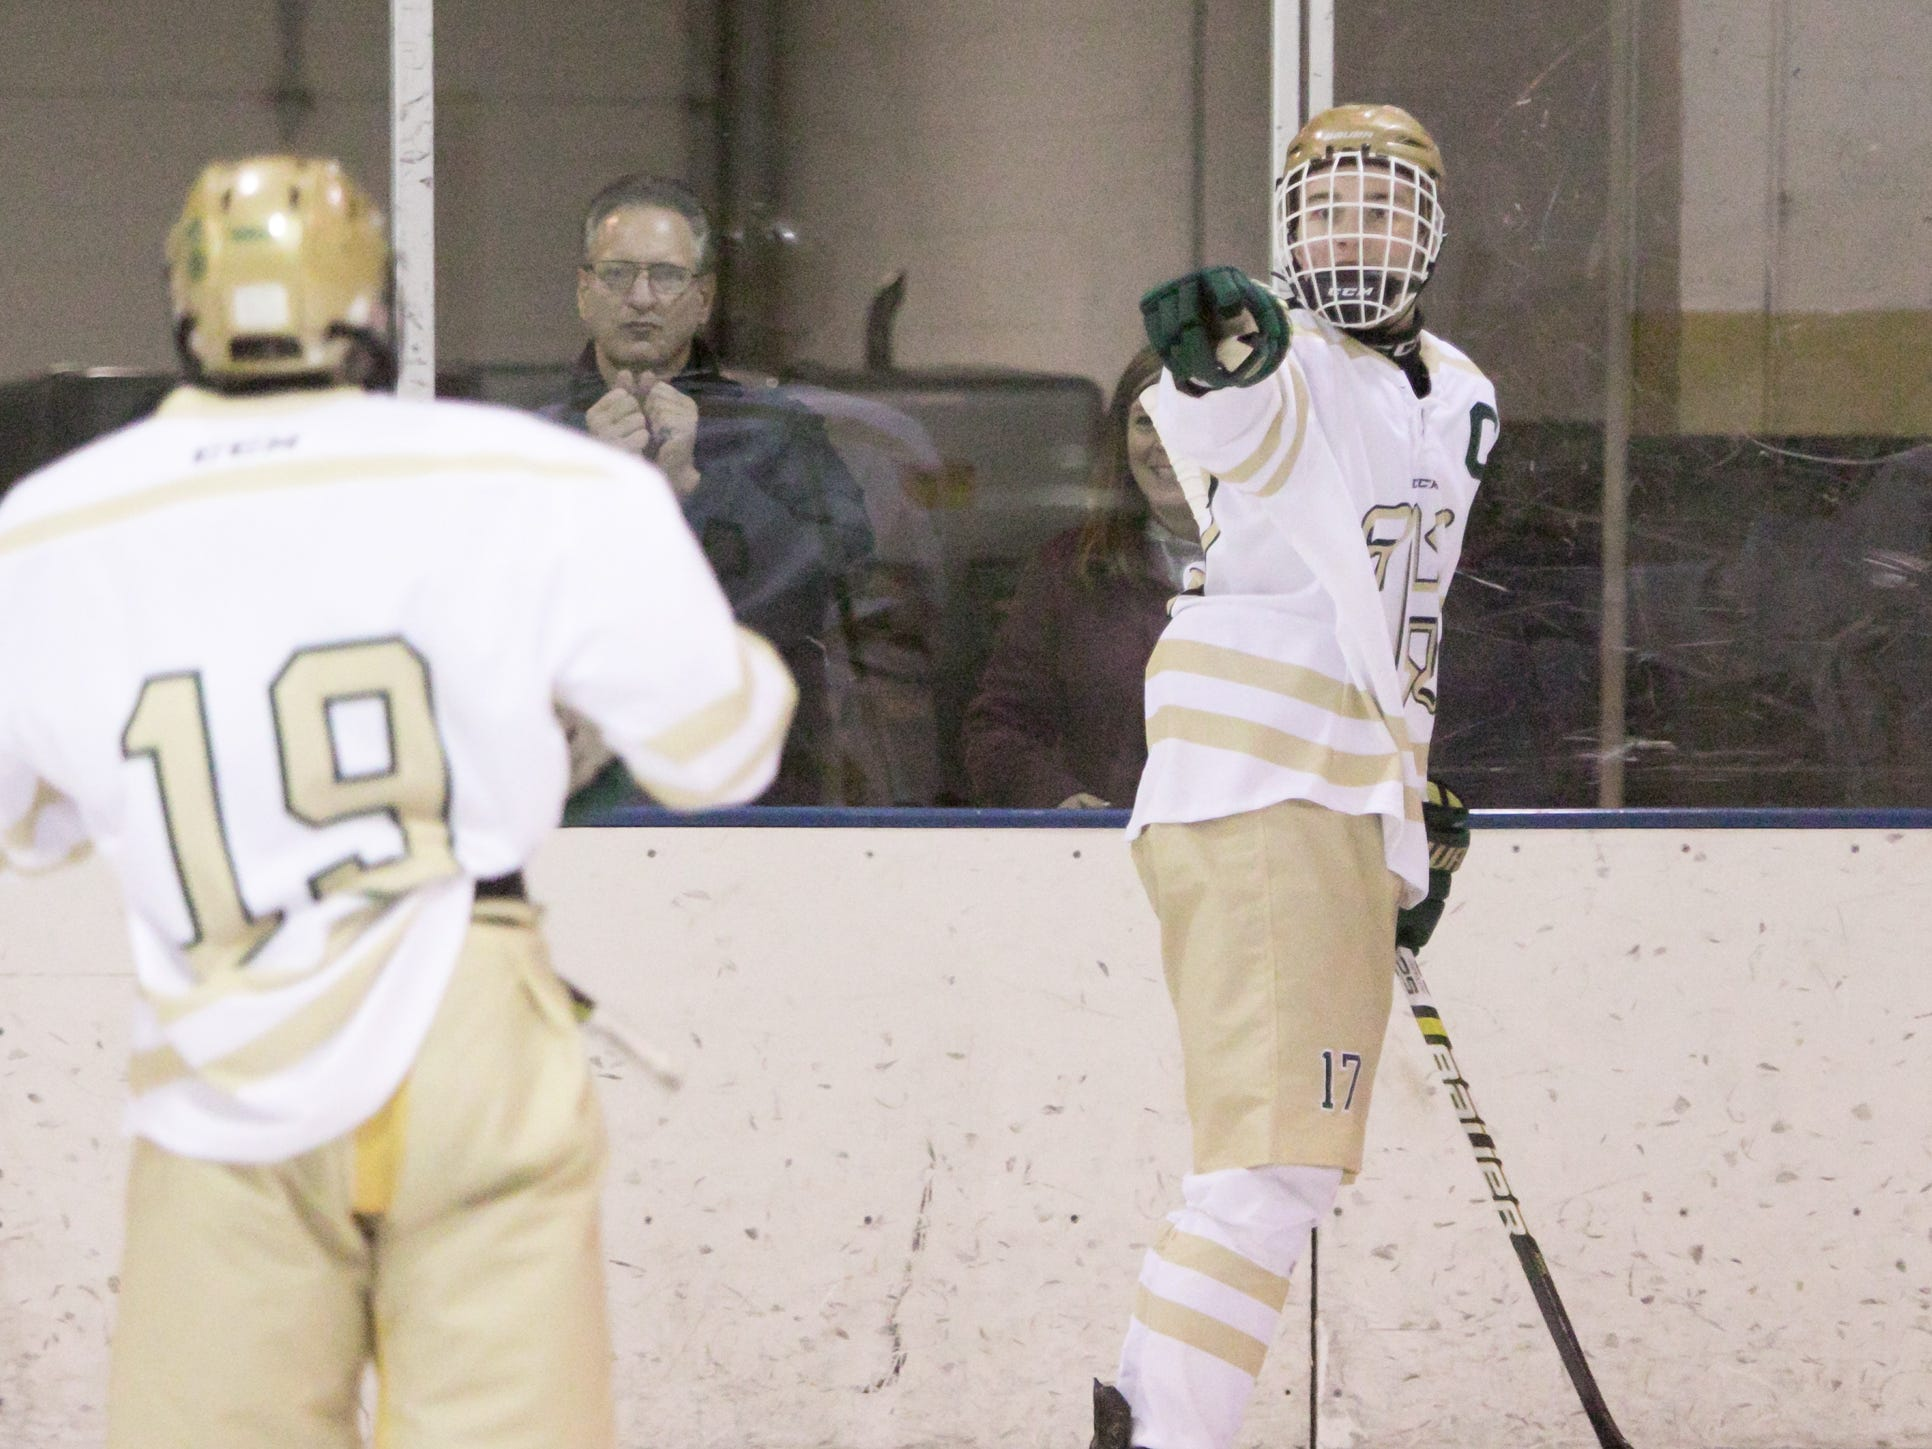 After scoring Howell's third goal, Josh Farr points to teammate Cam Nitschman in a 6-3 victory over Livonia Churchill on Friday, Jan. 4, 2019 at Grand Oaks Ice Arena.